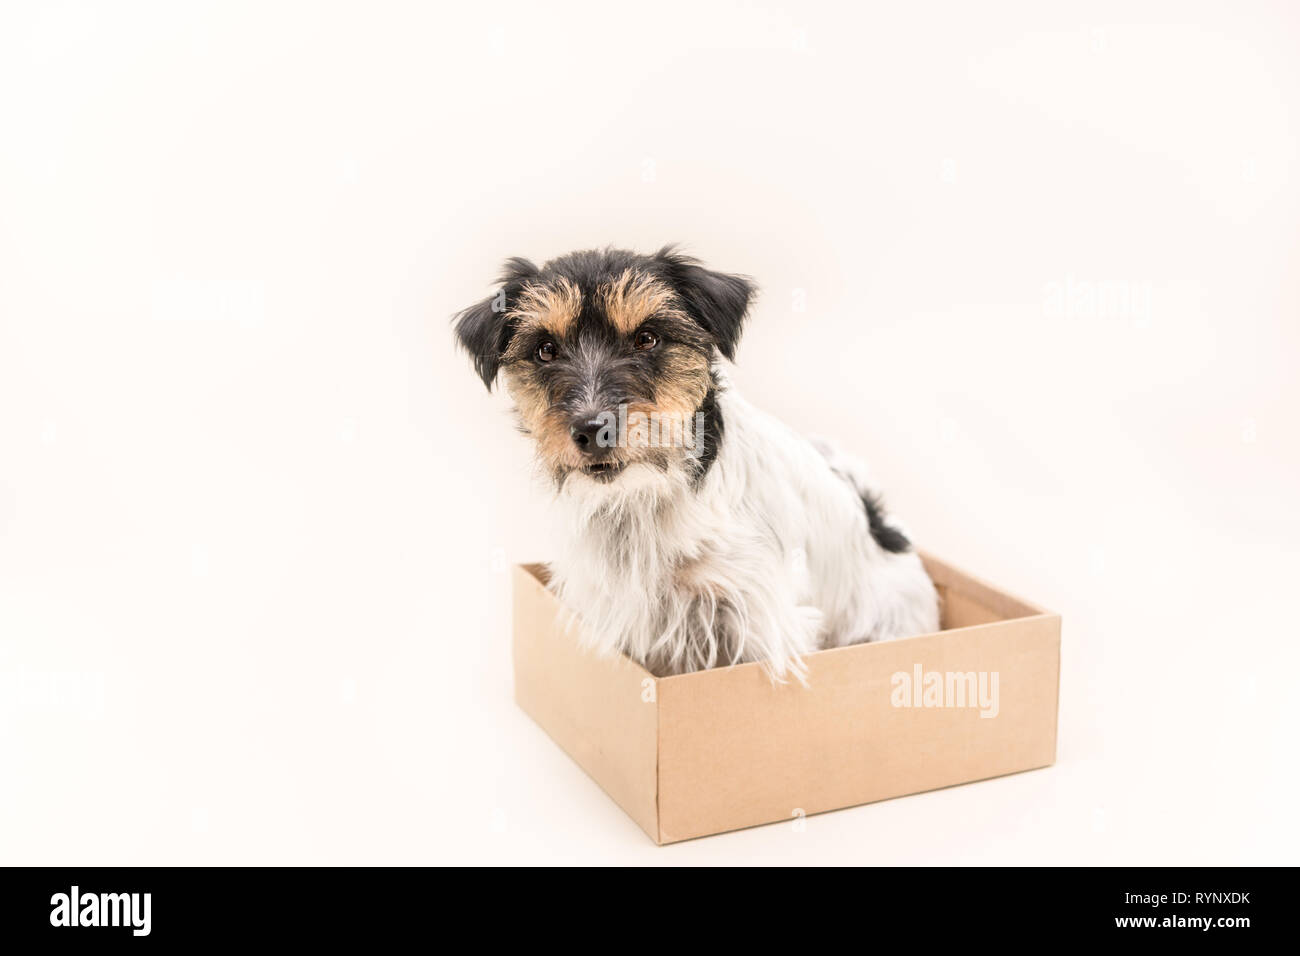 little dog sits obediently in a cardboard box. ready for mailing. Cute Jack Russell Terrier doggy 4 years old - hair style rough - Stock Image